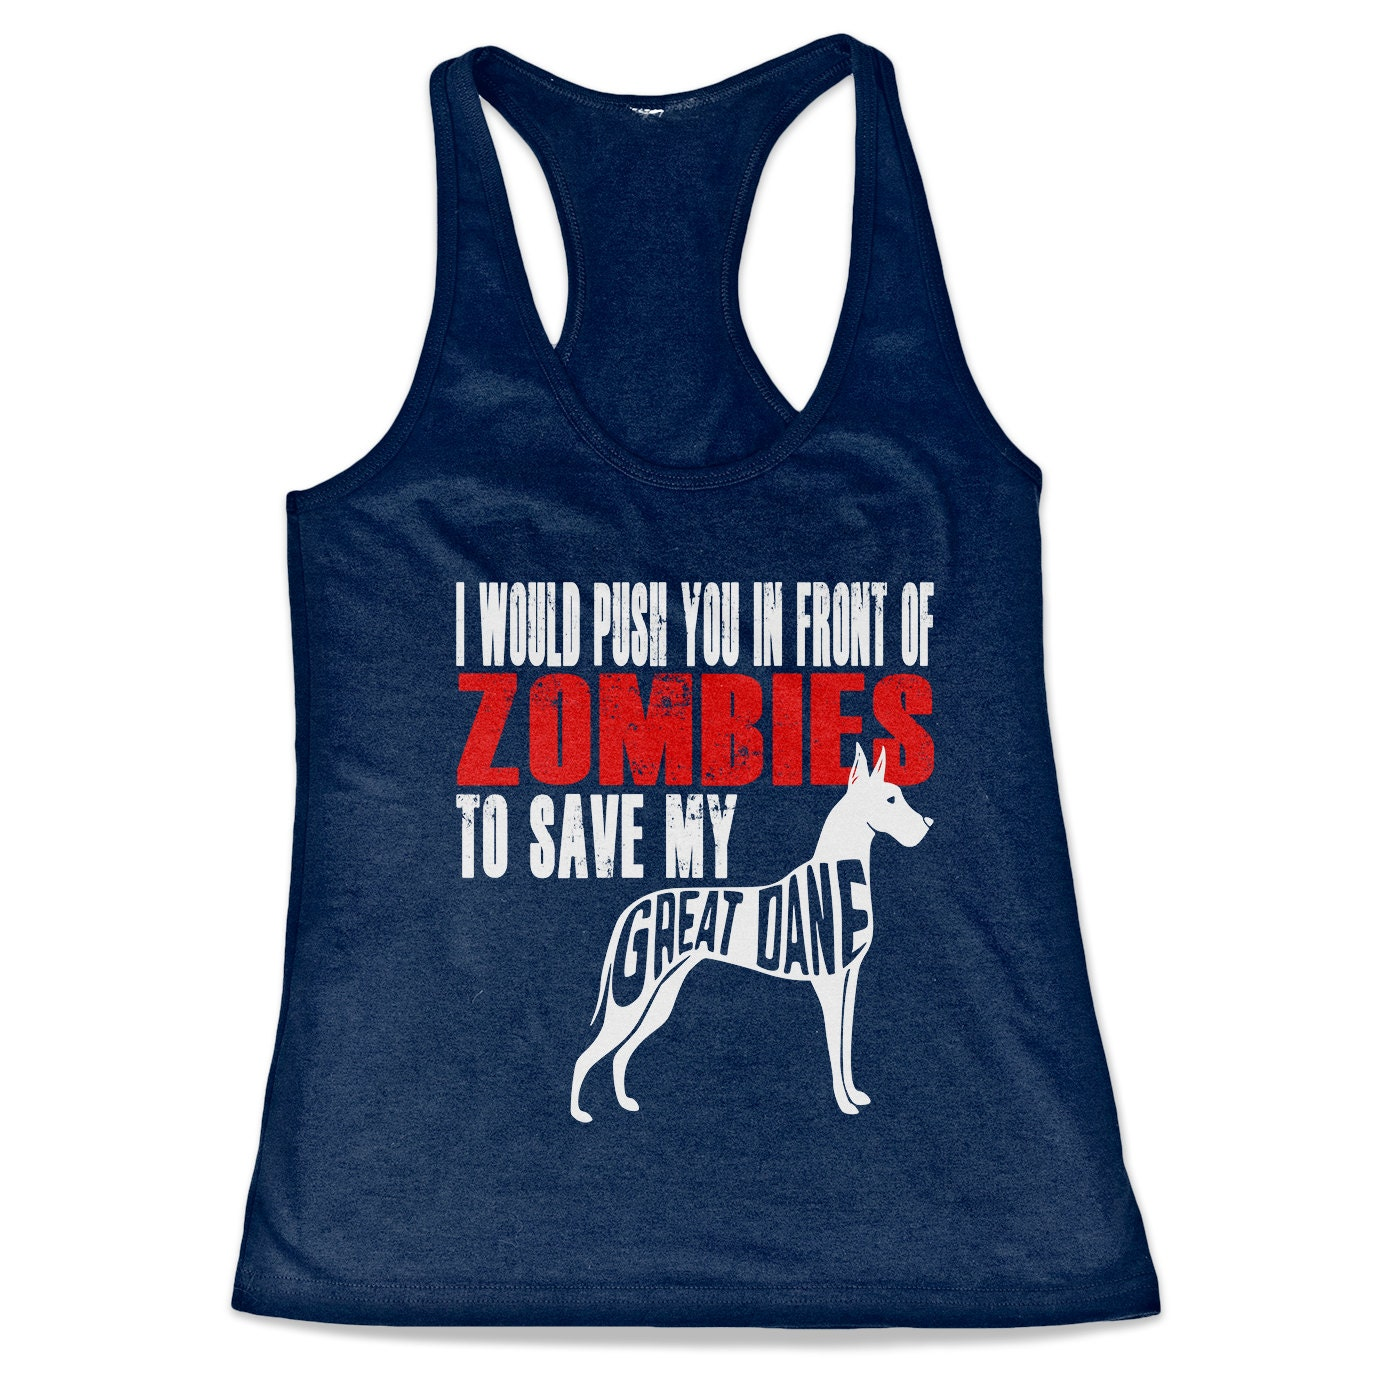 Great Dane Tank Top - I Would Push You In Front Of Zombies To Save My Great Dane - My Dog Great Dane Racerback Tank Top